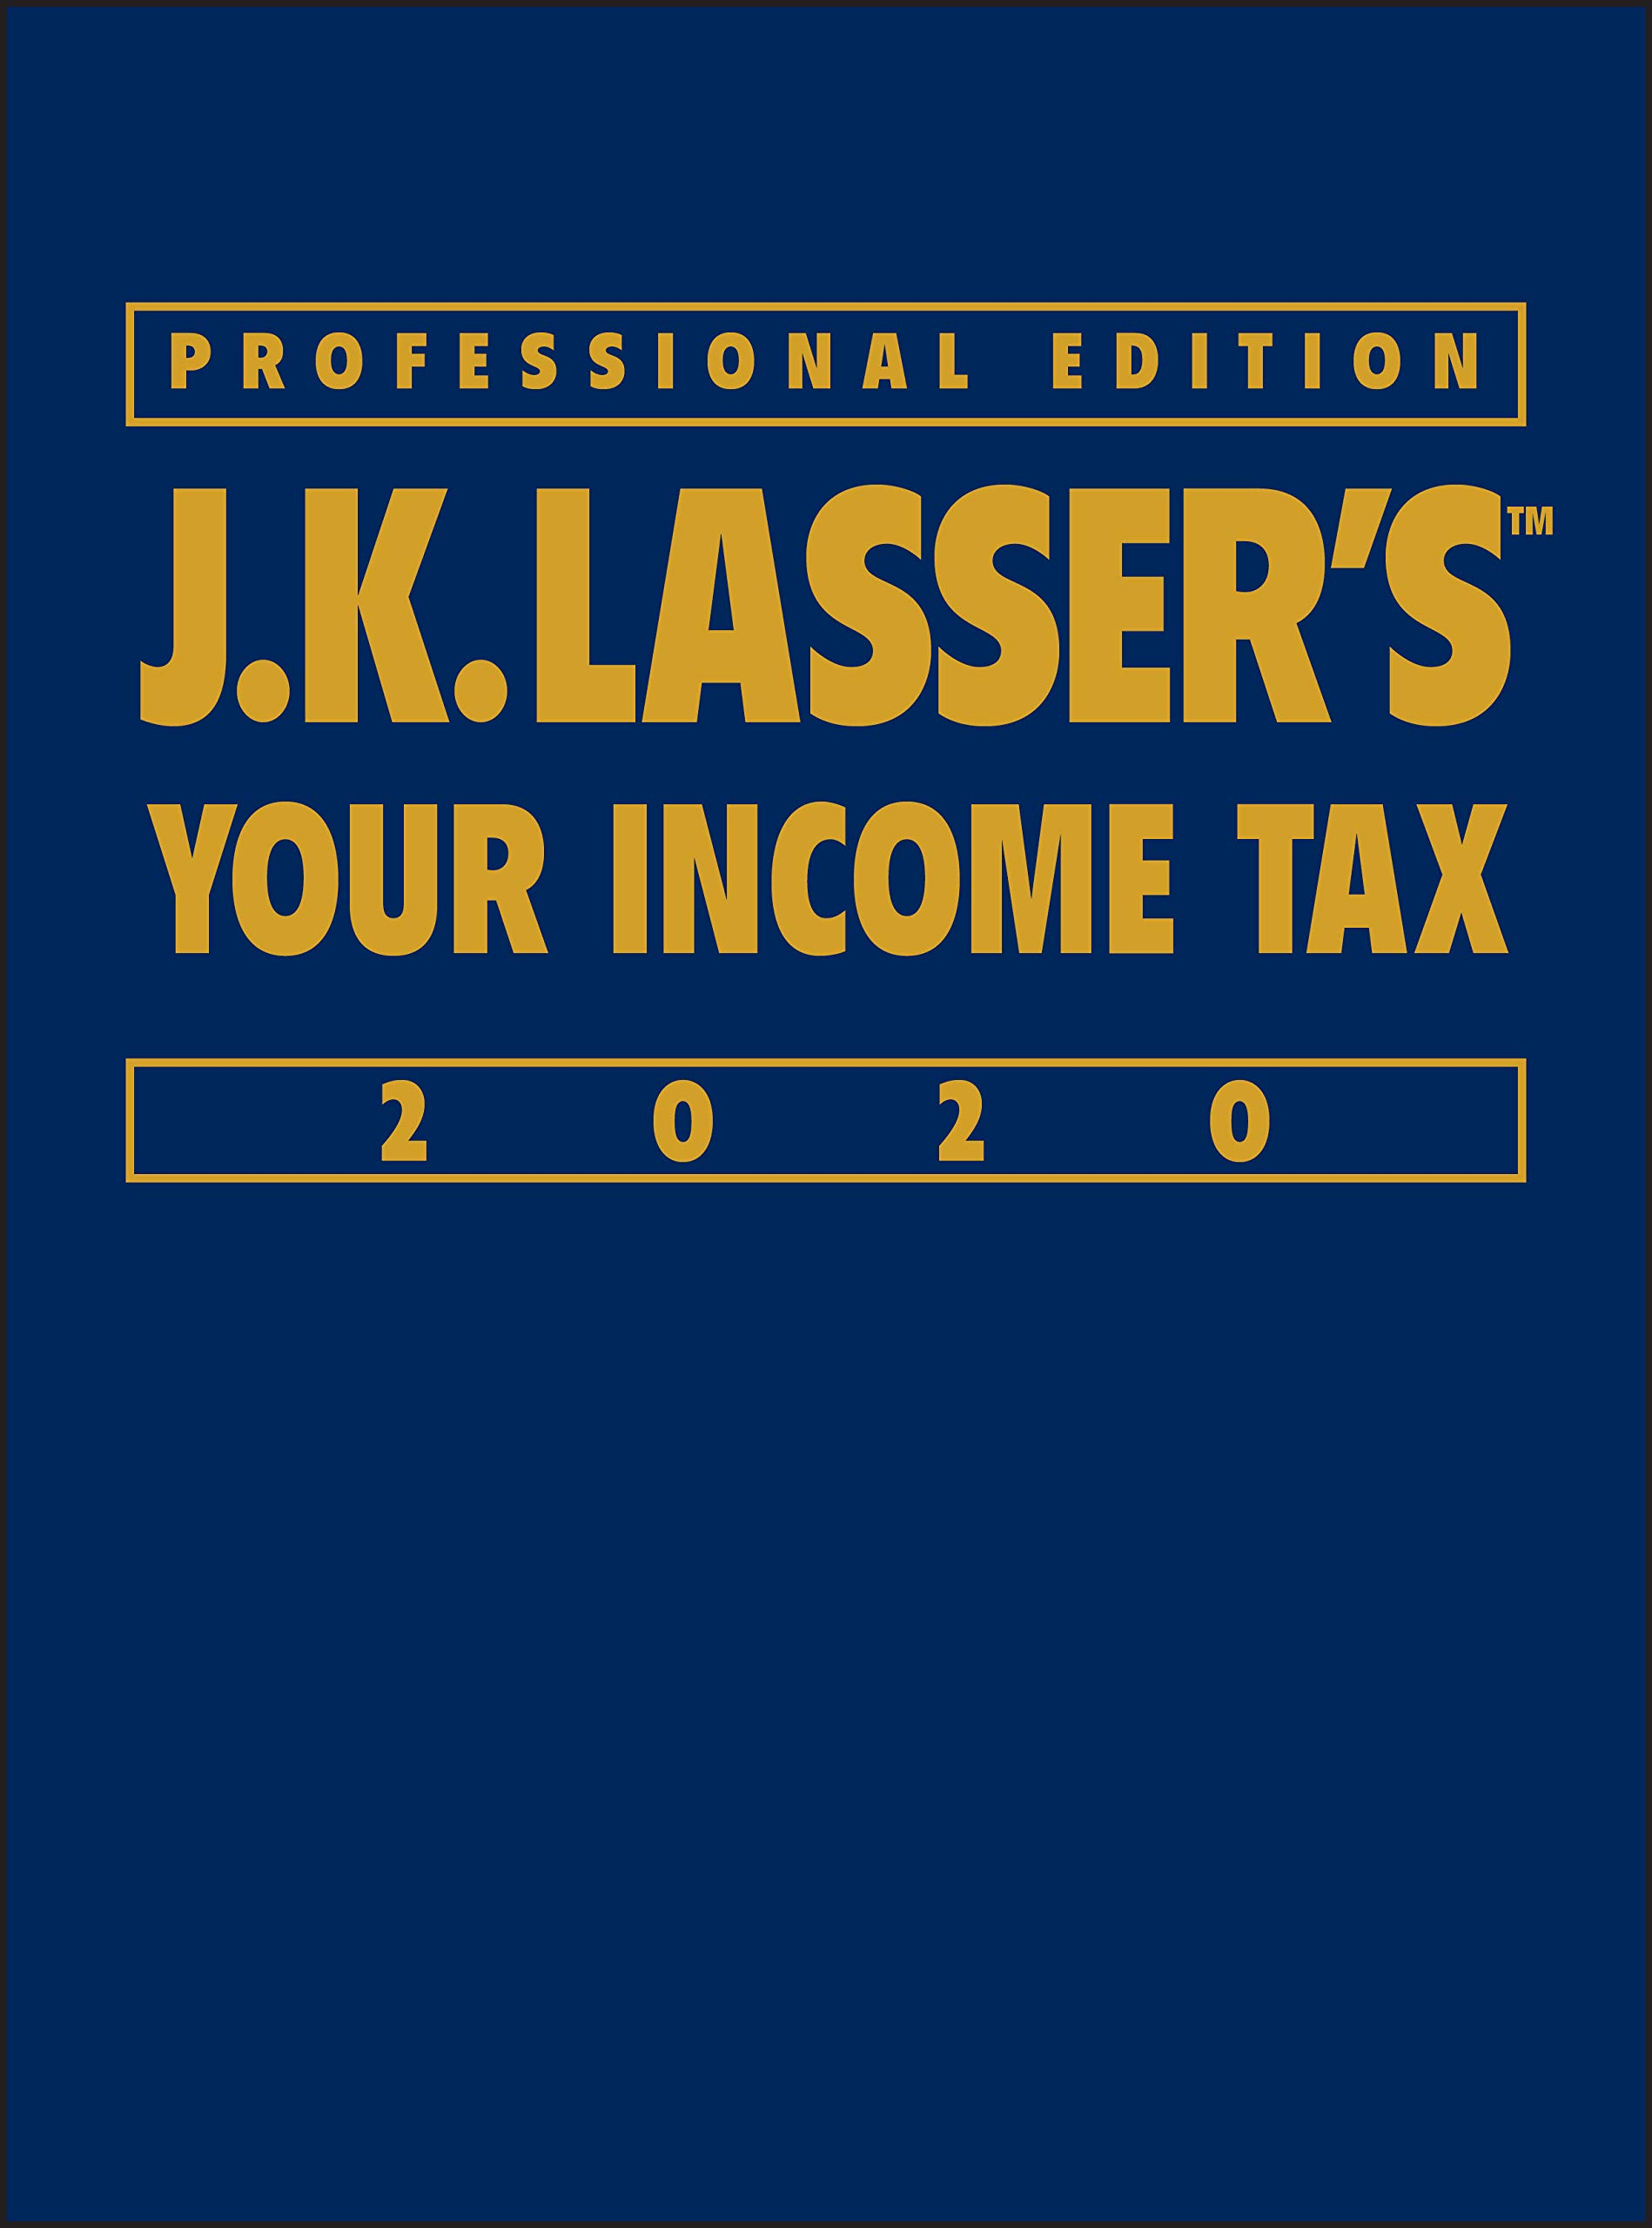 Download J.K. Lasser's Your Income Tax 2020 